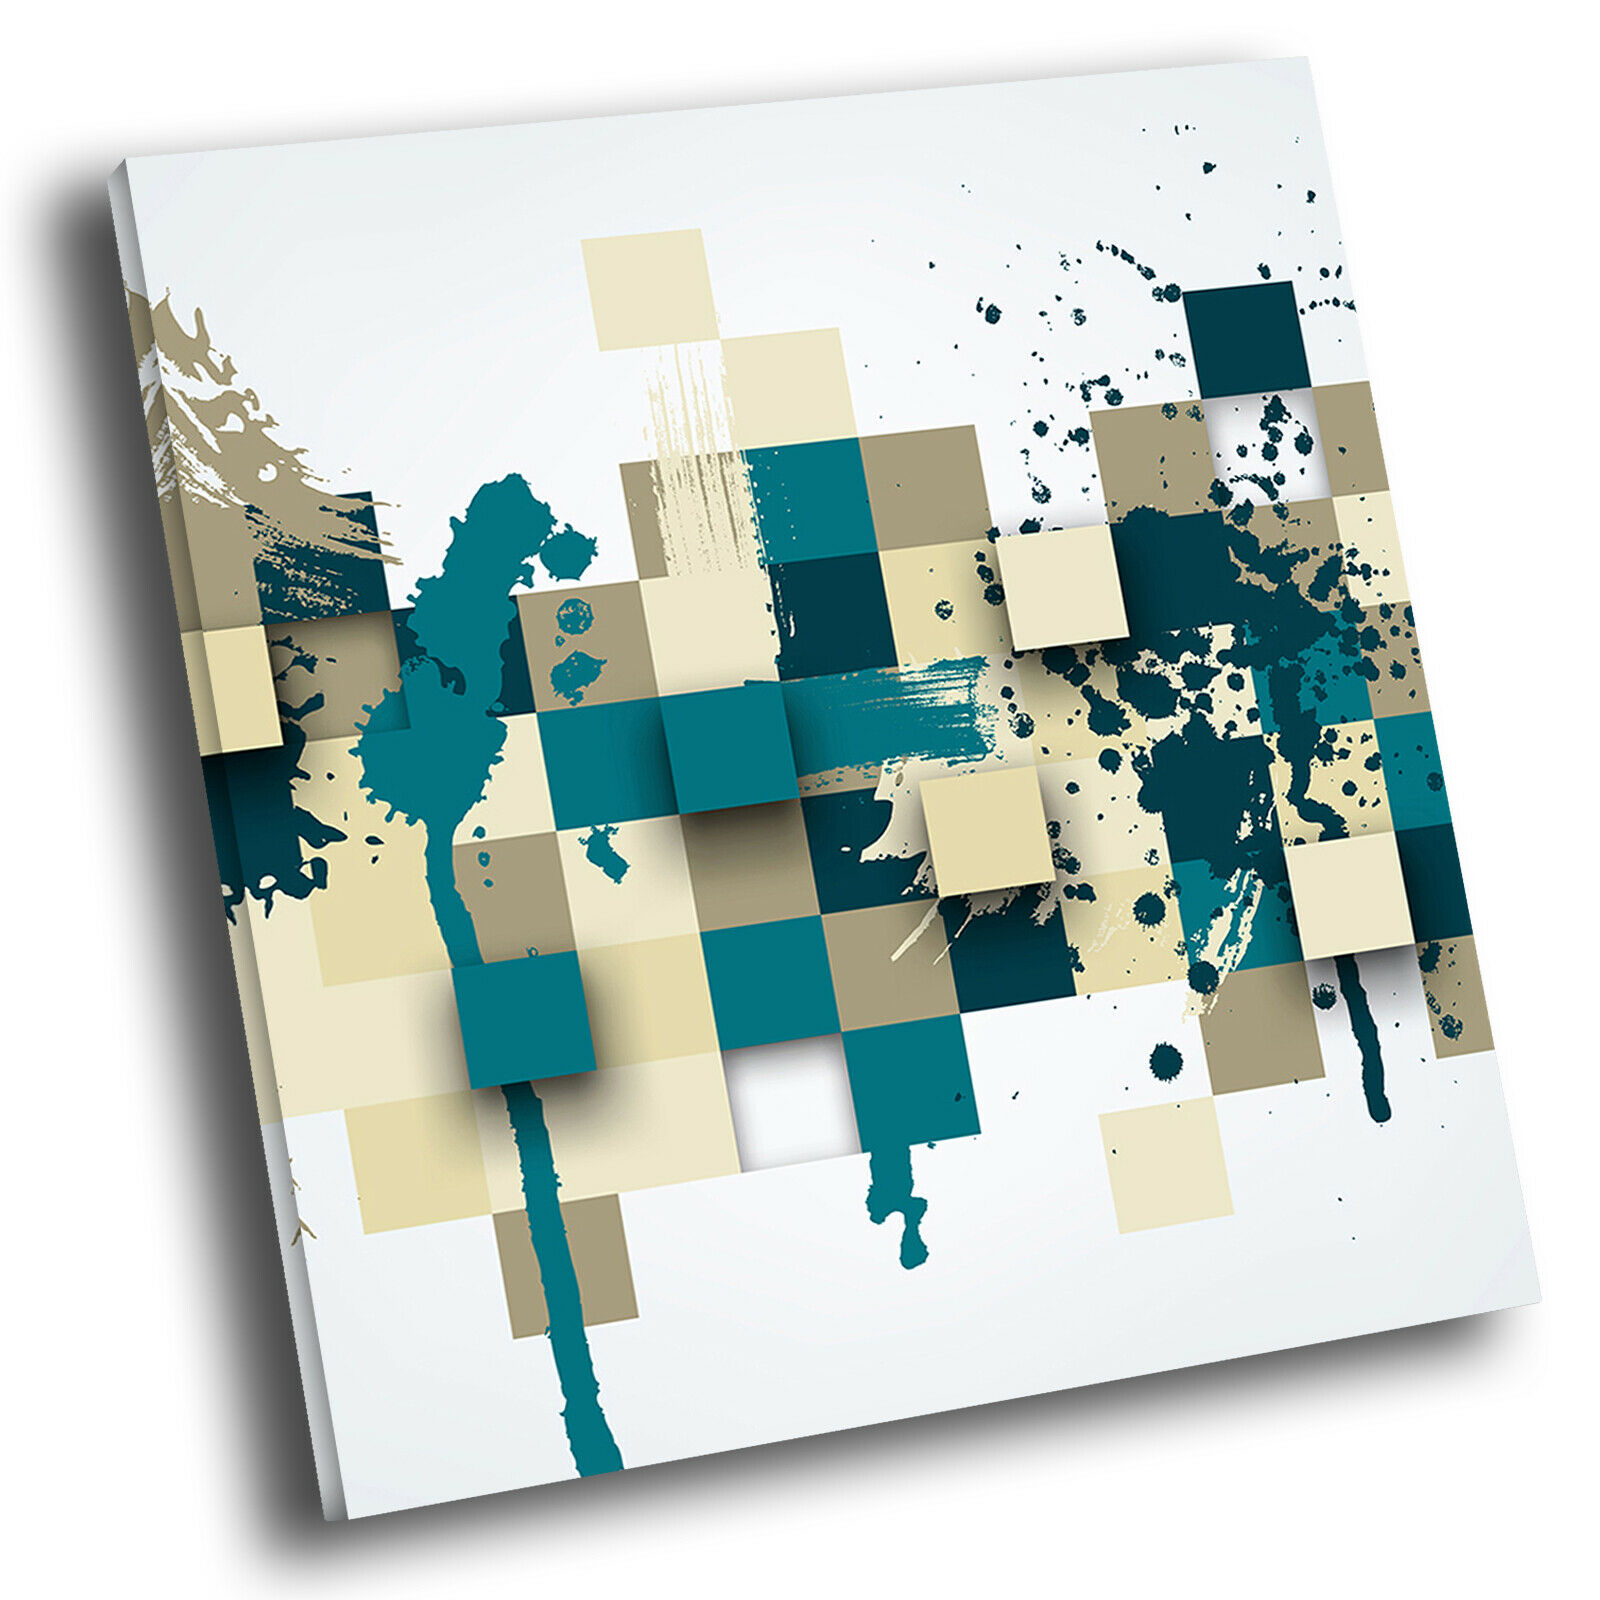 Blau grau Teal Cool Square Abstract Photo Canvas Wall Art Large Picture Prints